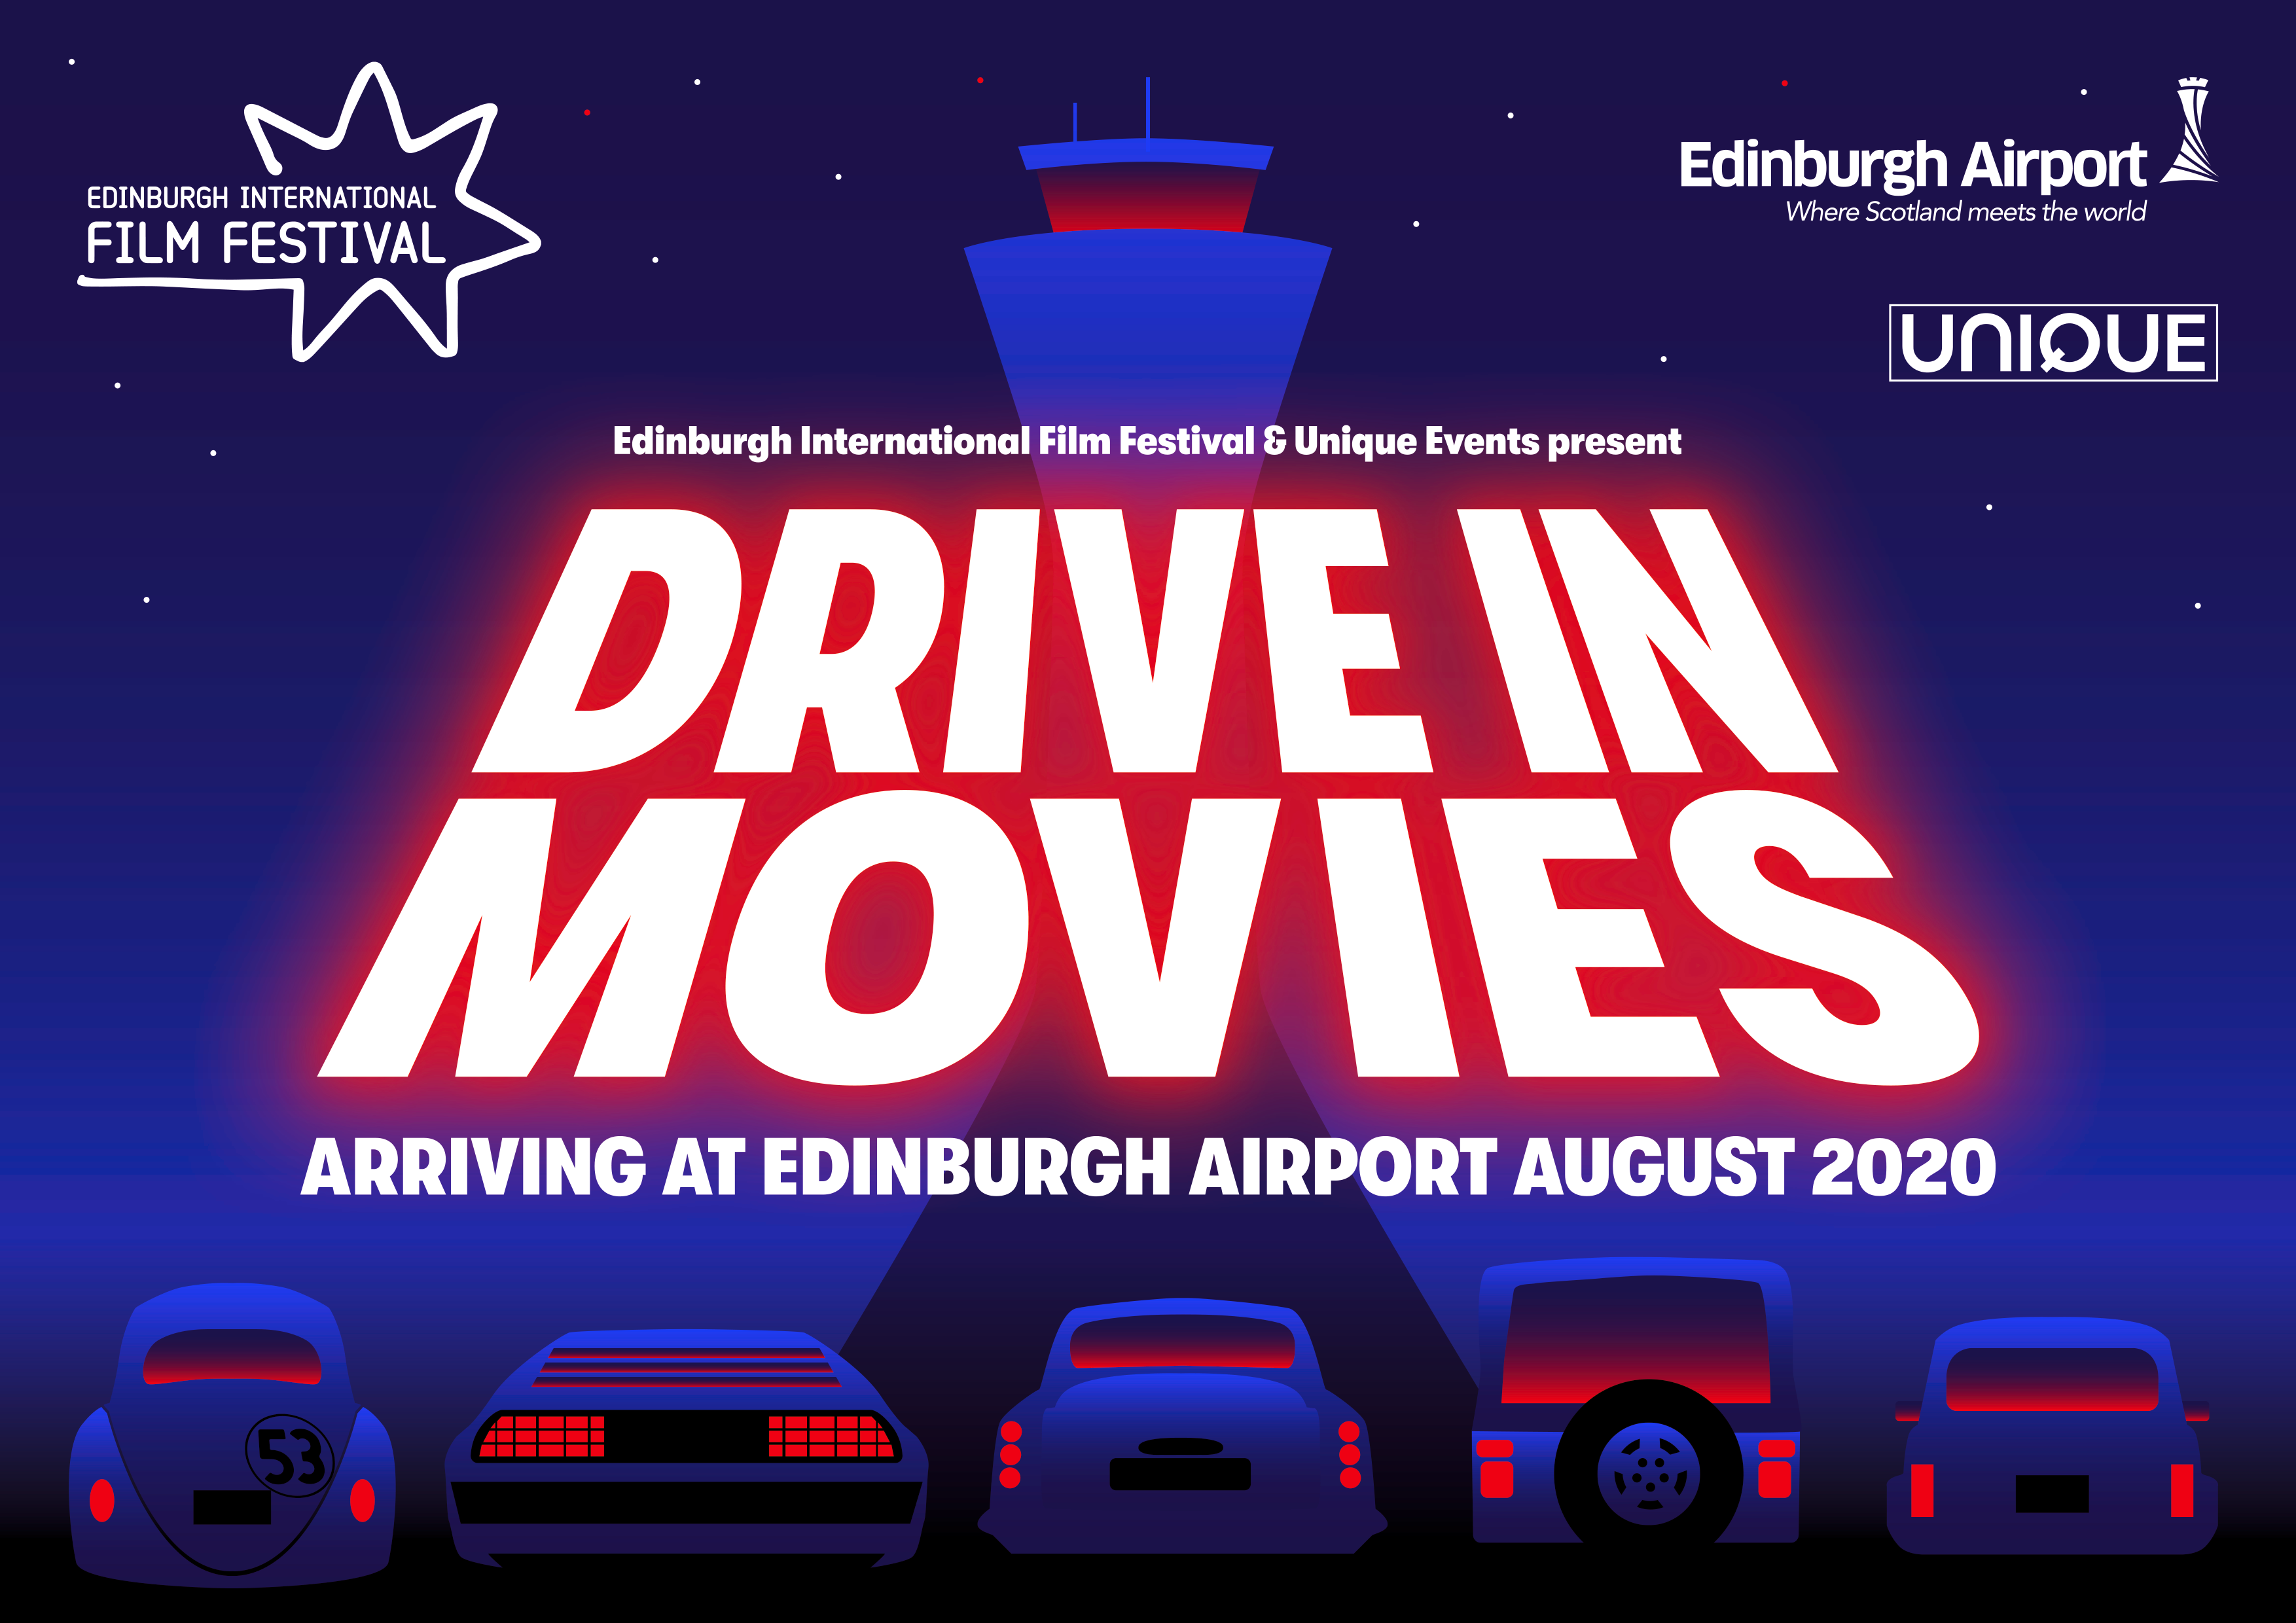 Poster for Drive In Movies, arriving at Edinburgh Airport August 2020, presented by Edinburgh International Film Festival and Unique Events - bright blue background frames the writing glowing in red neon, the background is the Edinburgh Airport tower with a row of neon cars at the bottom